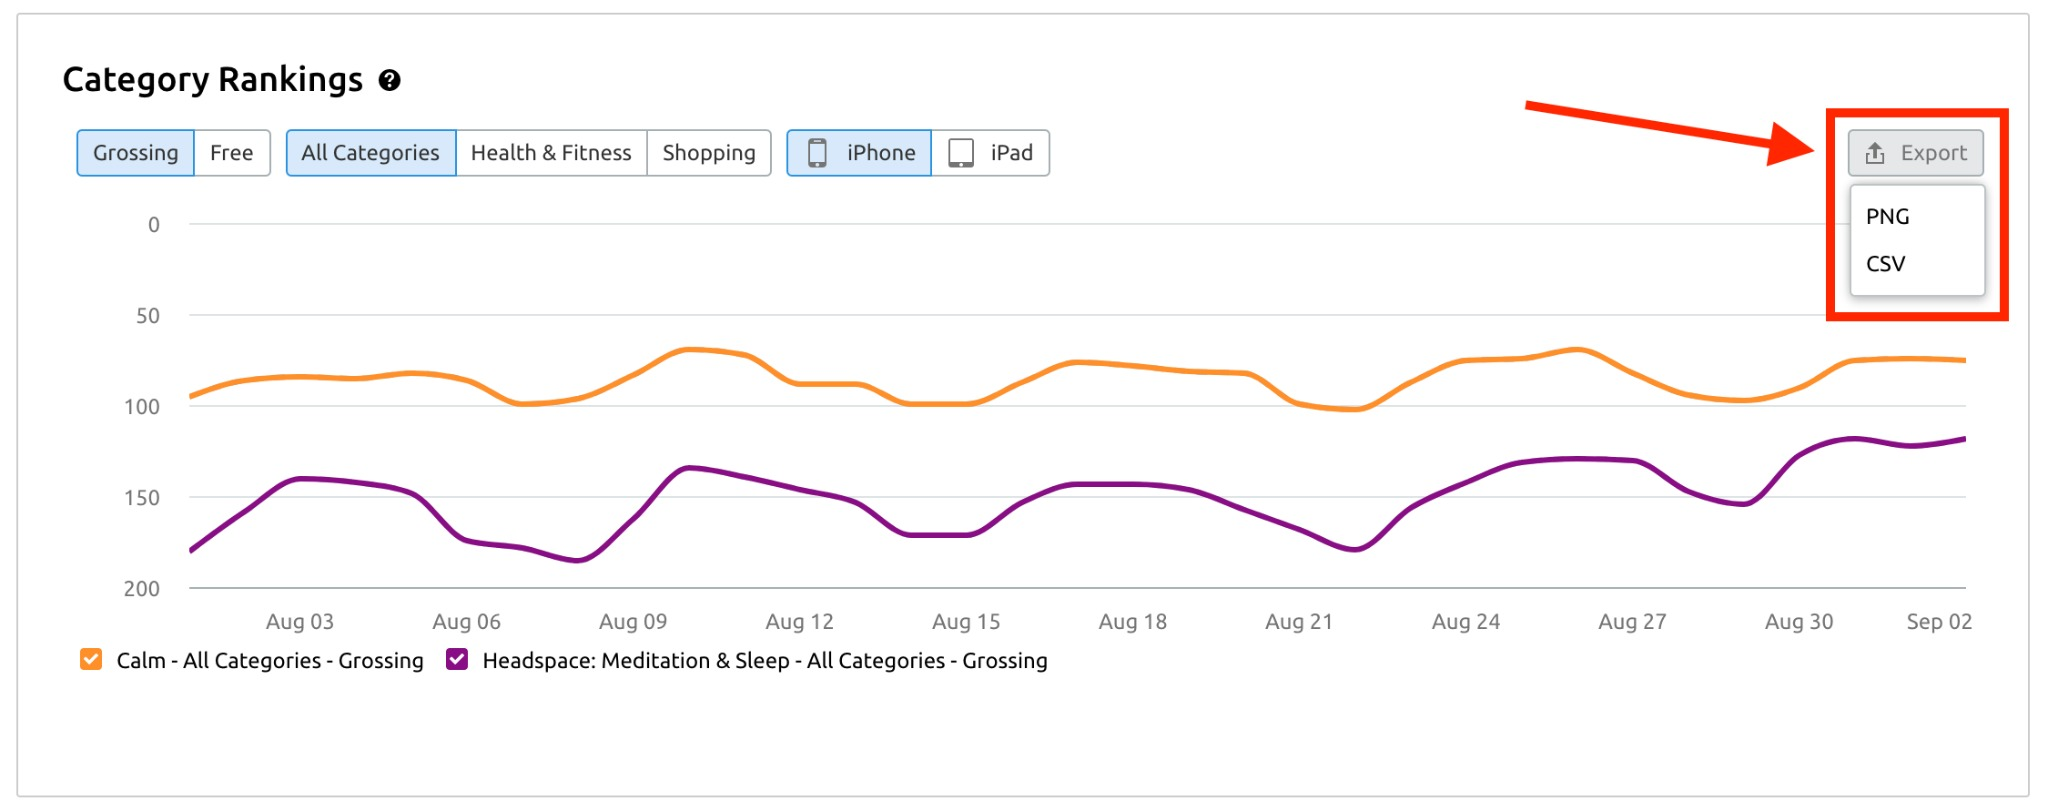 Mobile App Insights image 6